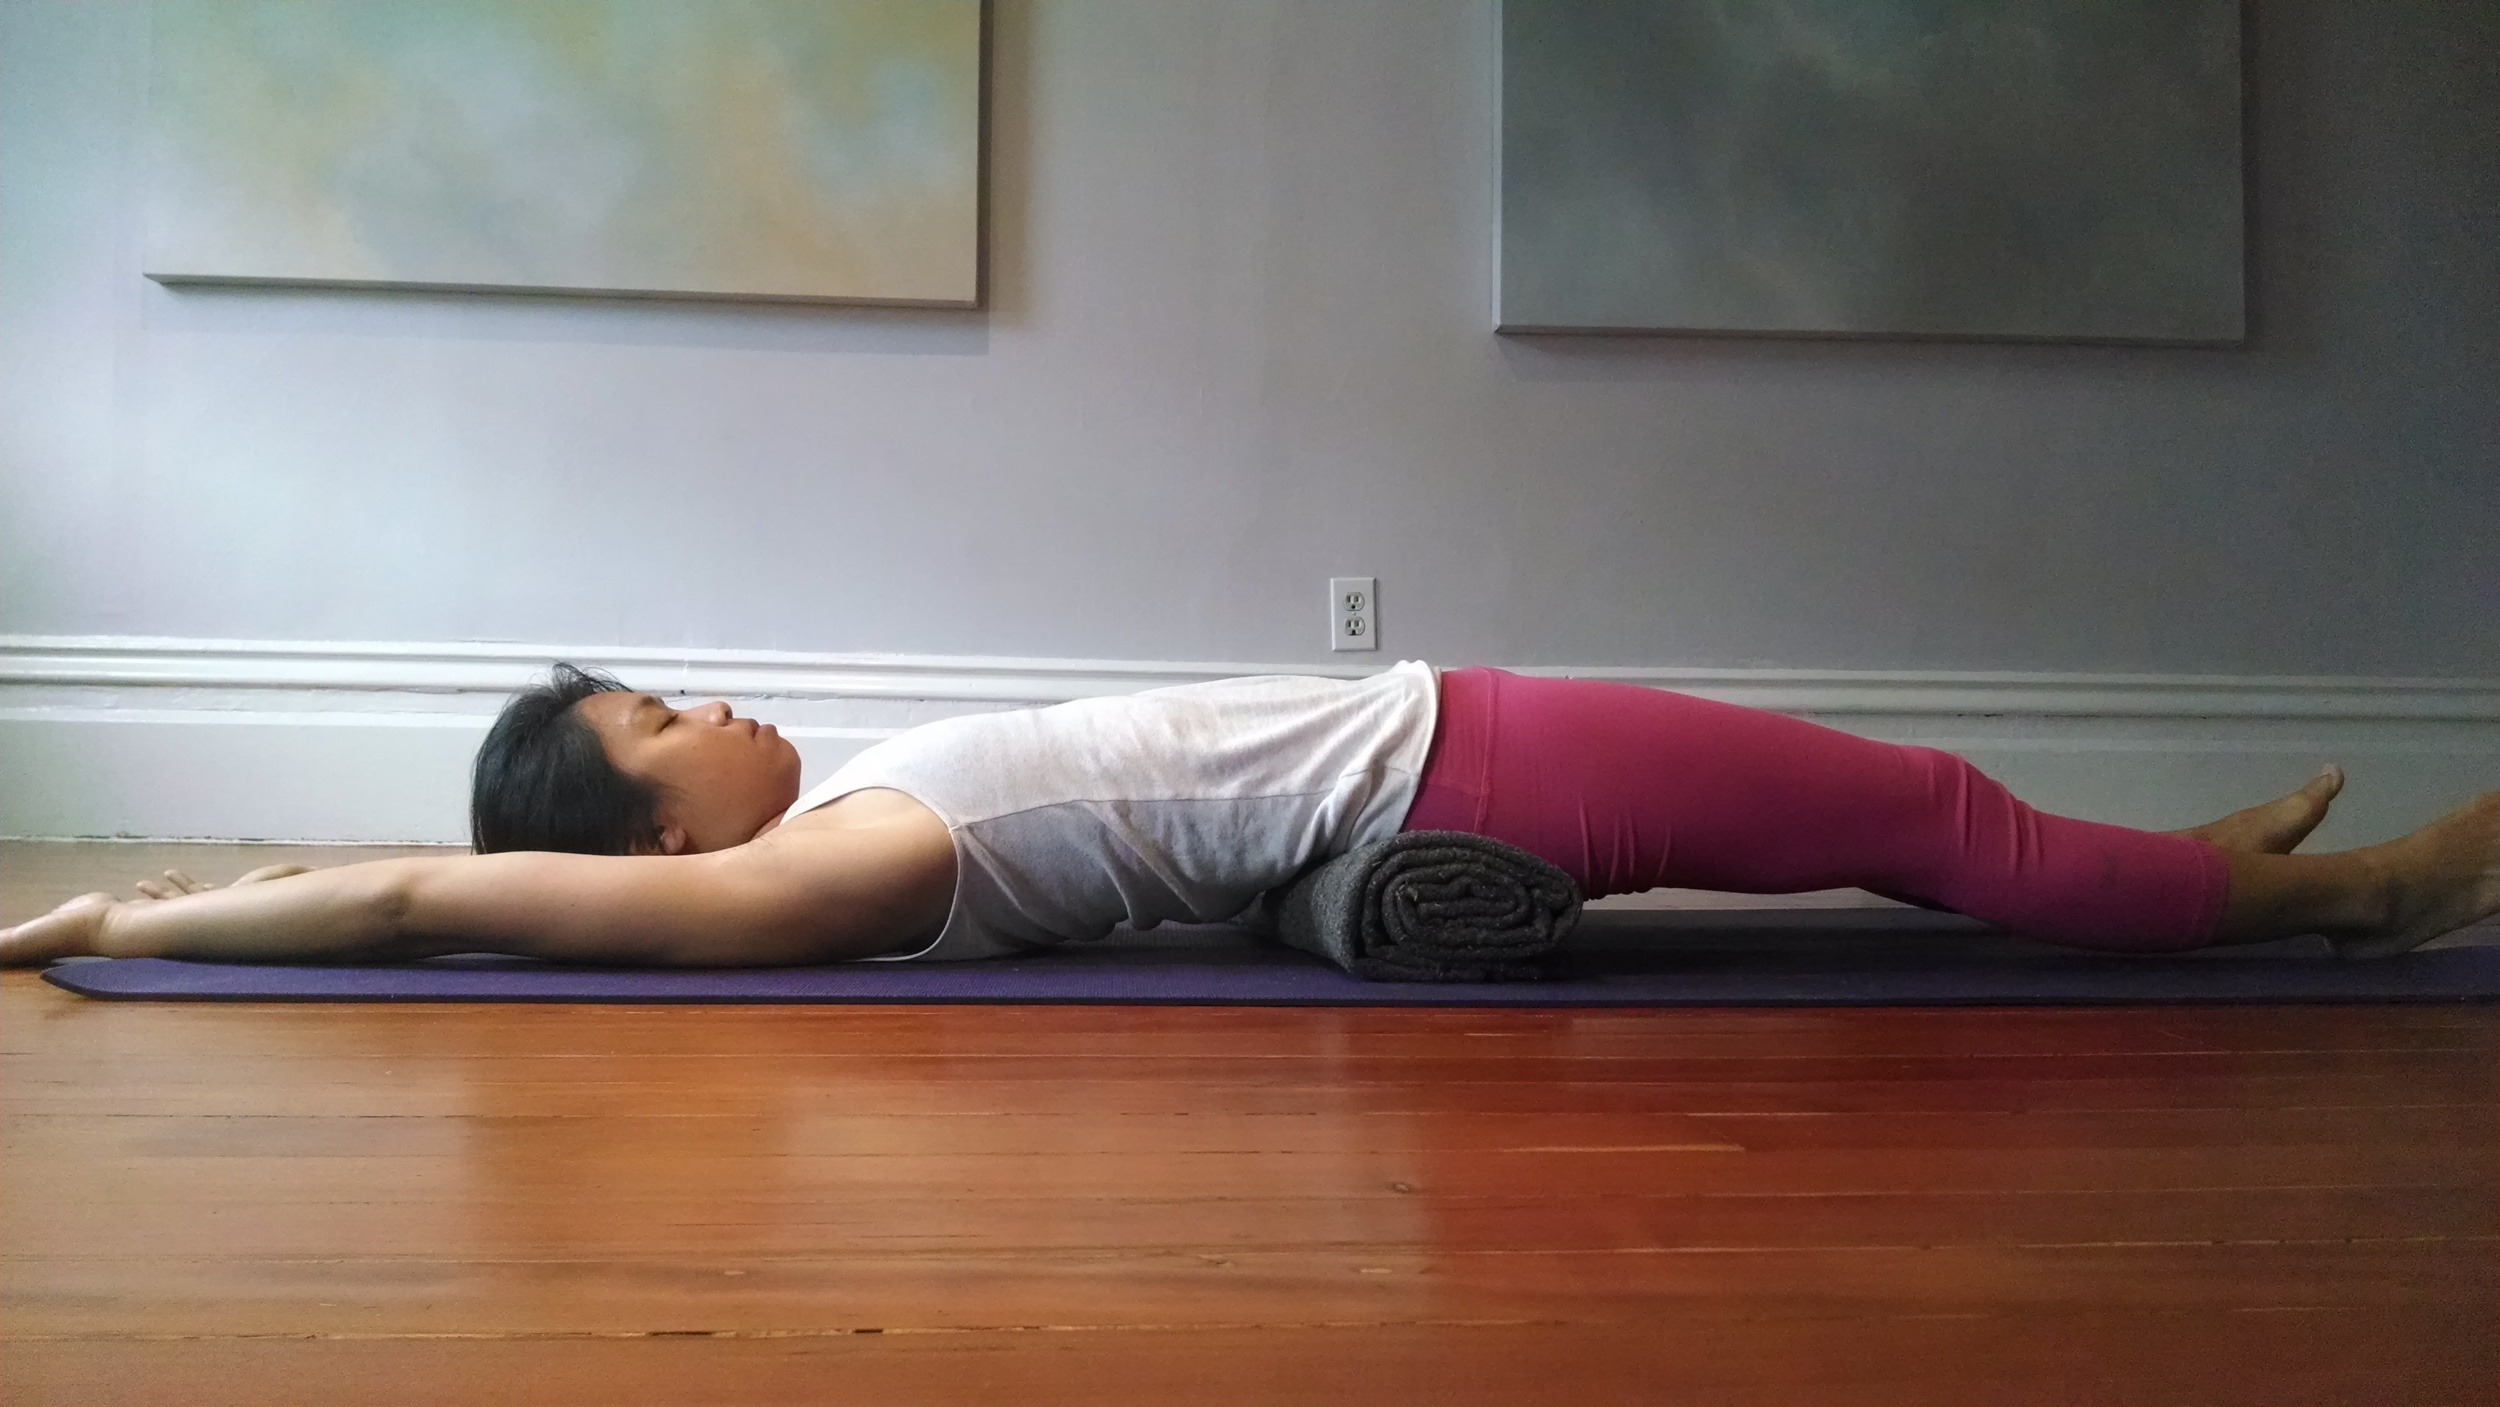 Lower back opener. Feel free to bend the knees and place both feet on the floor if you have lower back tension. You can also place the arms down by your side.